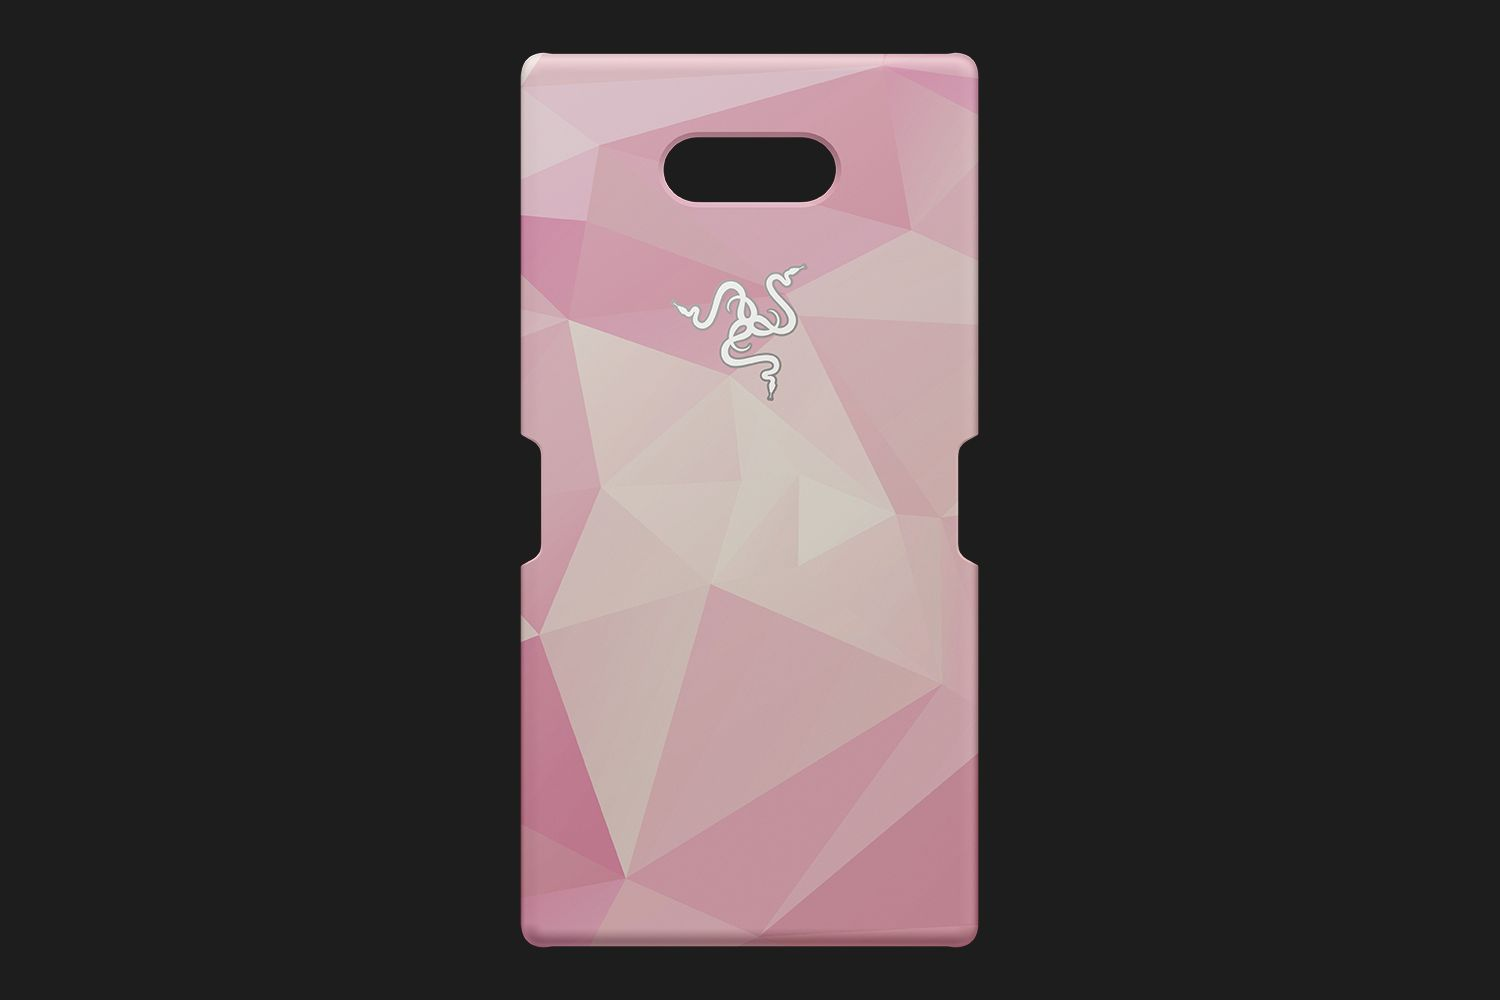 Razer introduces more Quartz Pink gaming products for Valentine's Day 2